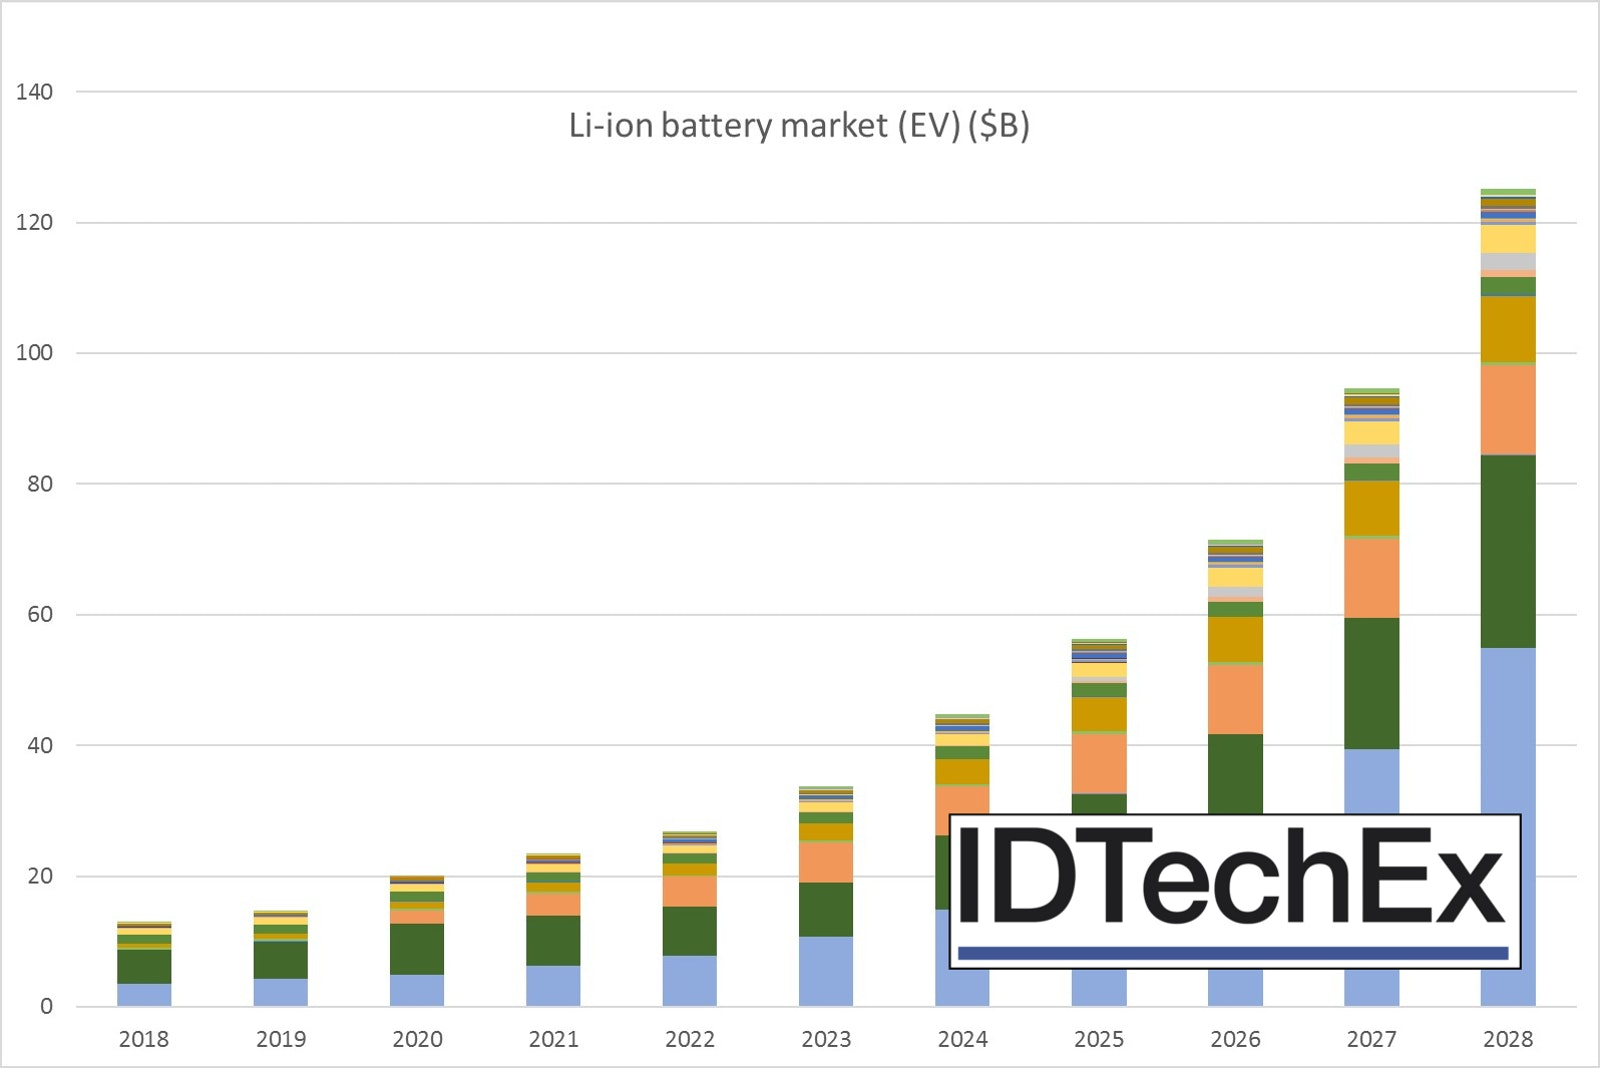 Li-ion Batteries 2018-2028: IDTechEx